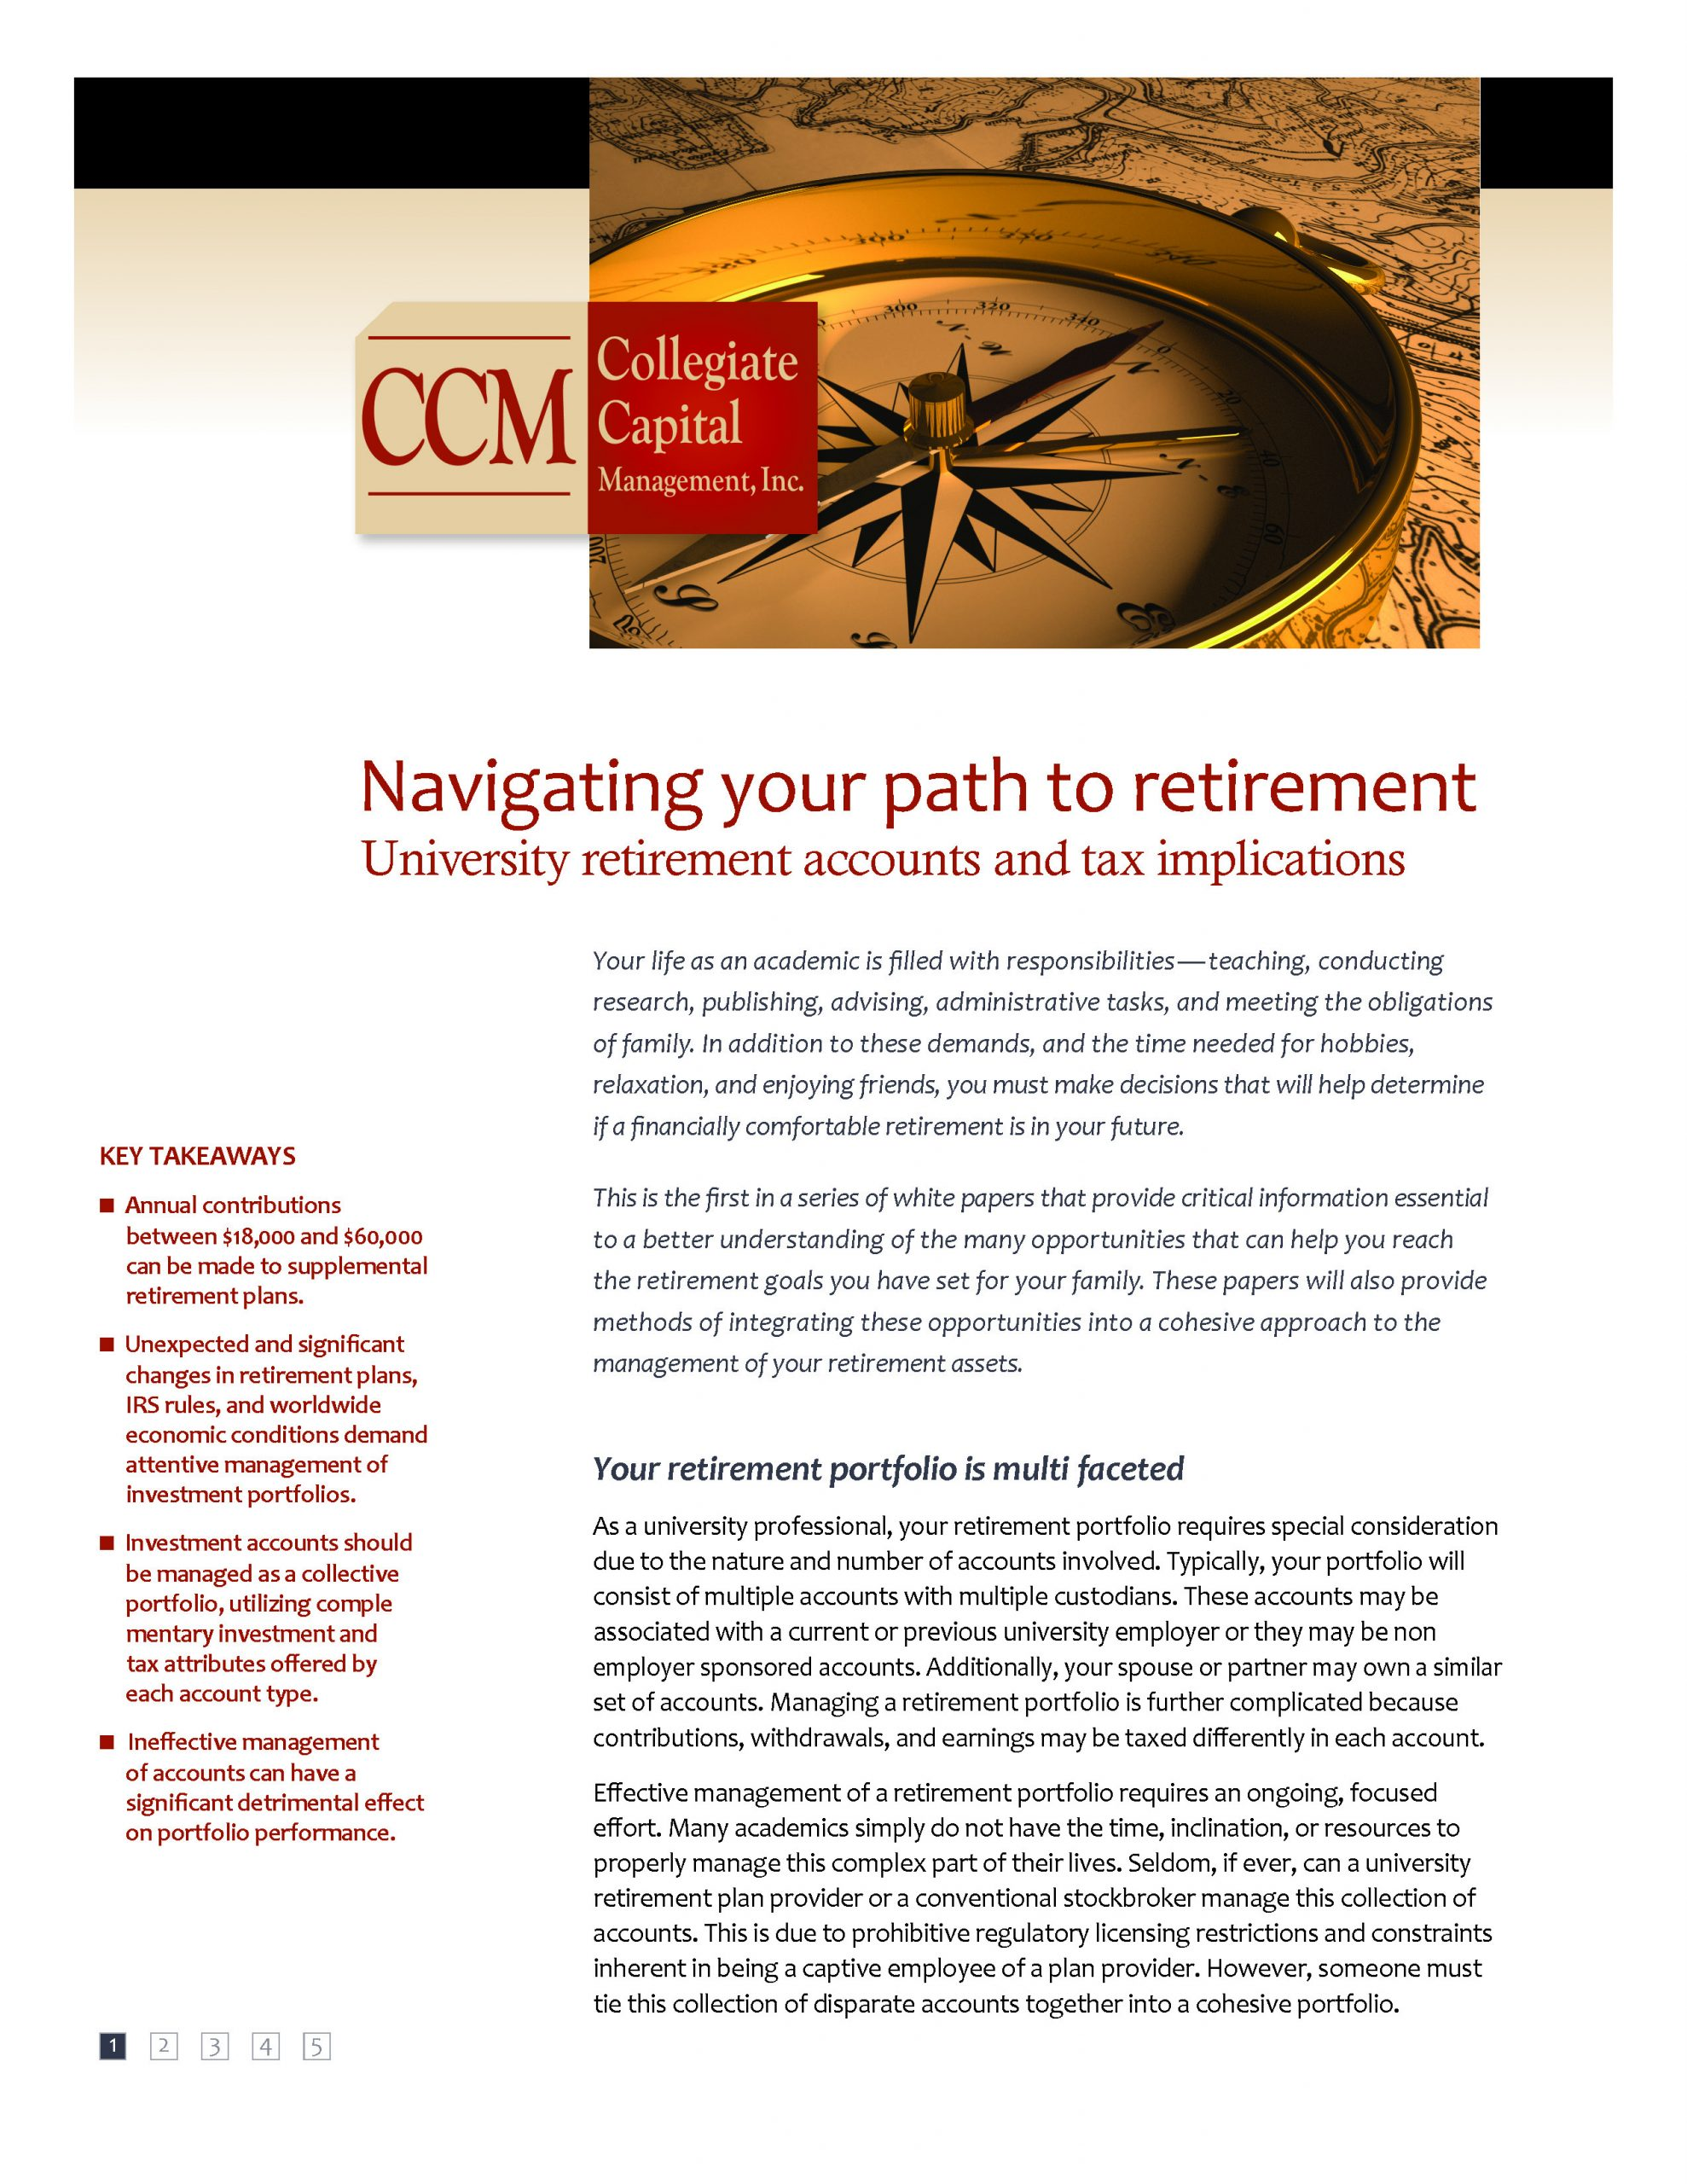 White Paper: Navigating your path to retirement- University retirement accounts and tax implications